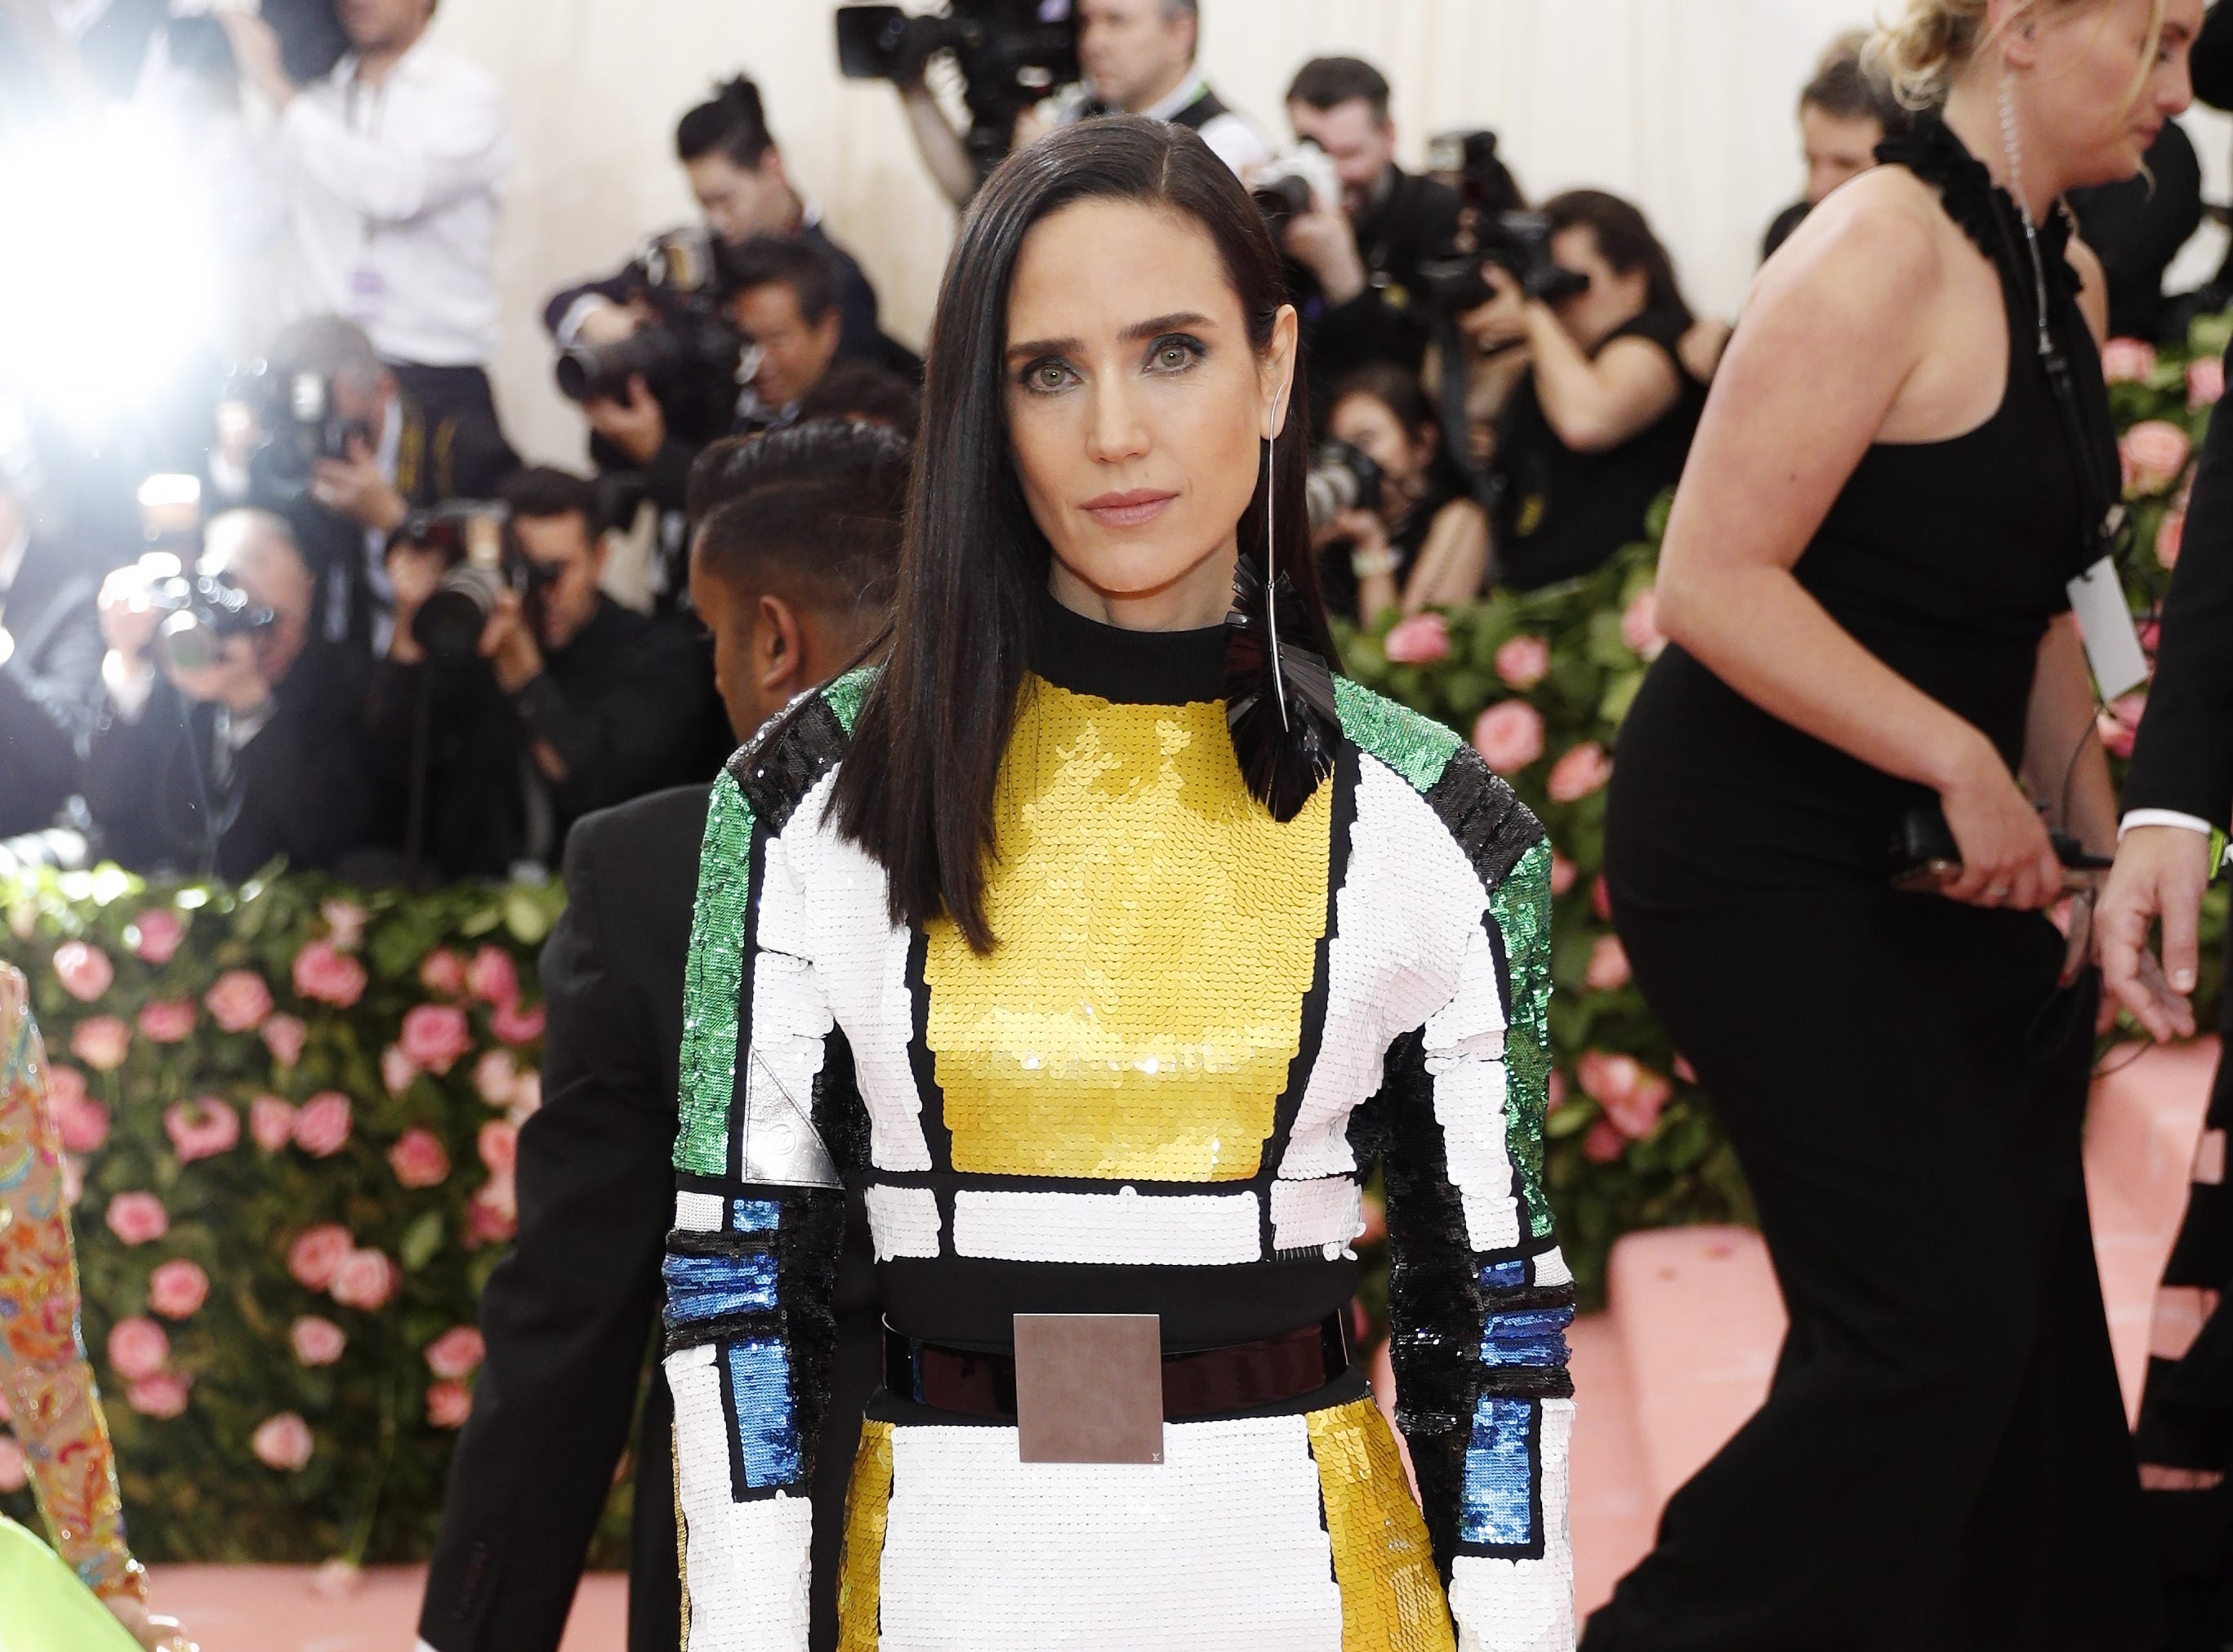 epa07552402 Jennifer Connelly arrives on the red carpet for the 2019 Met Gala, the annual benefit for the Metropolitan Museum of Art's Costume Institute, in New York, New York, USA, 06 May 2019. The event coincides with the Met Costume Institute's new spring 2019 exhibition, 'Camp: Notes on Fashion', which runs from 09 May until 08 September 2019.  EPA-EFE/JUSTIN LANE ORG XMIT: MCX01